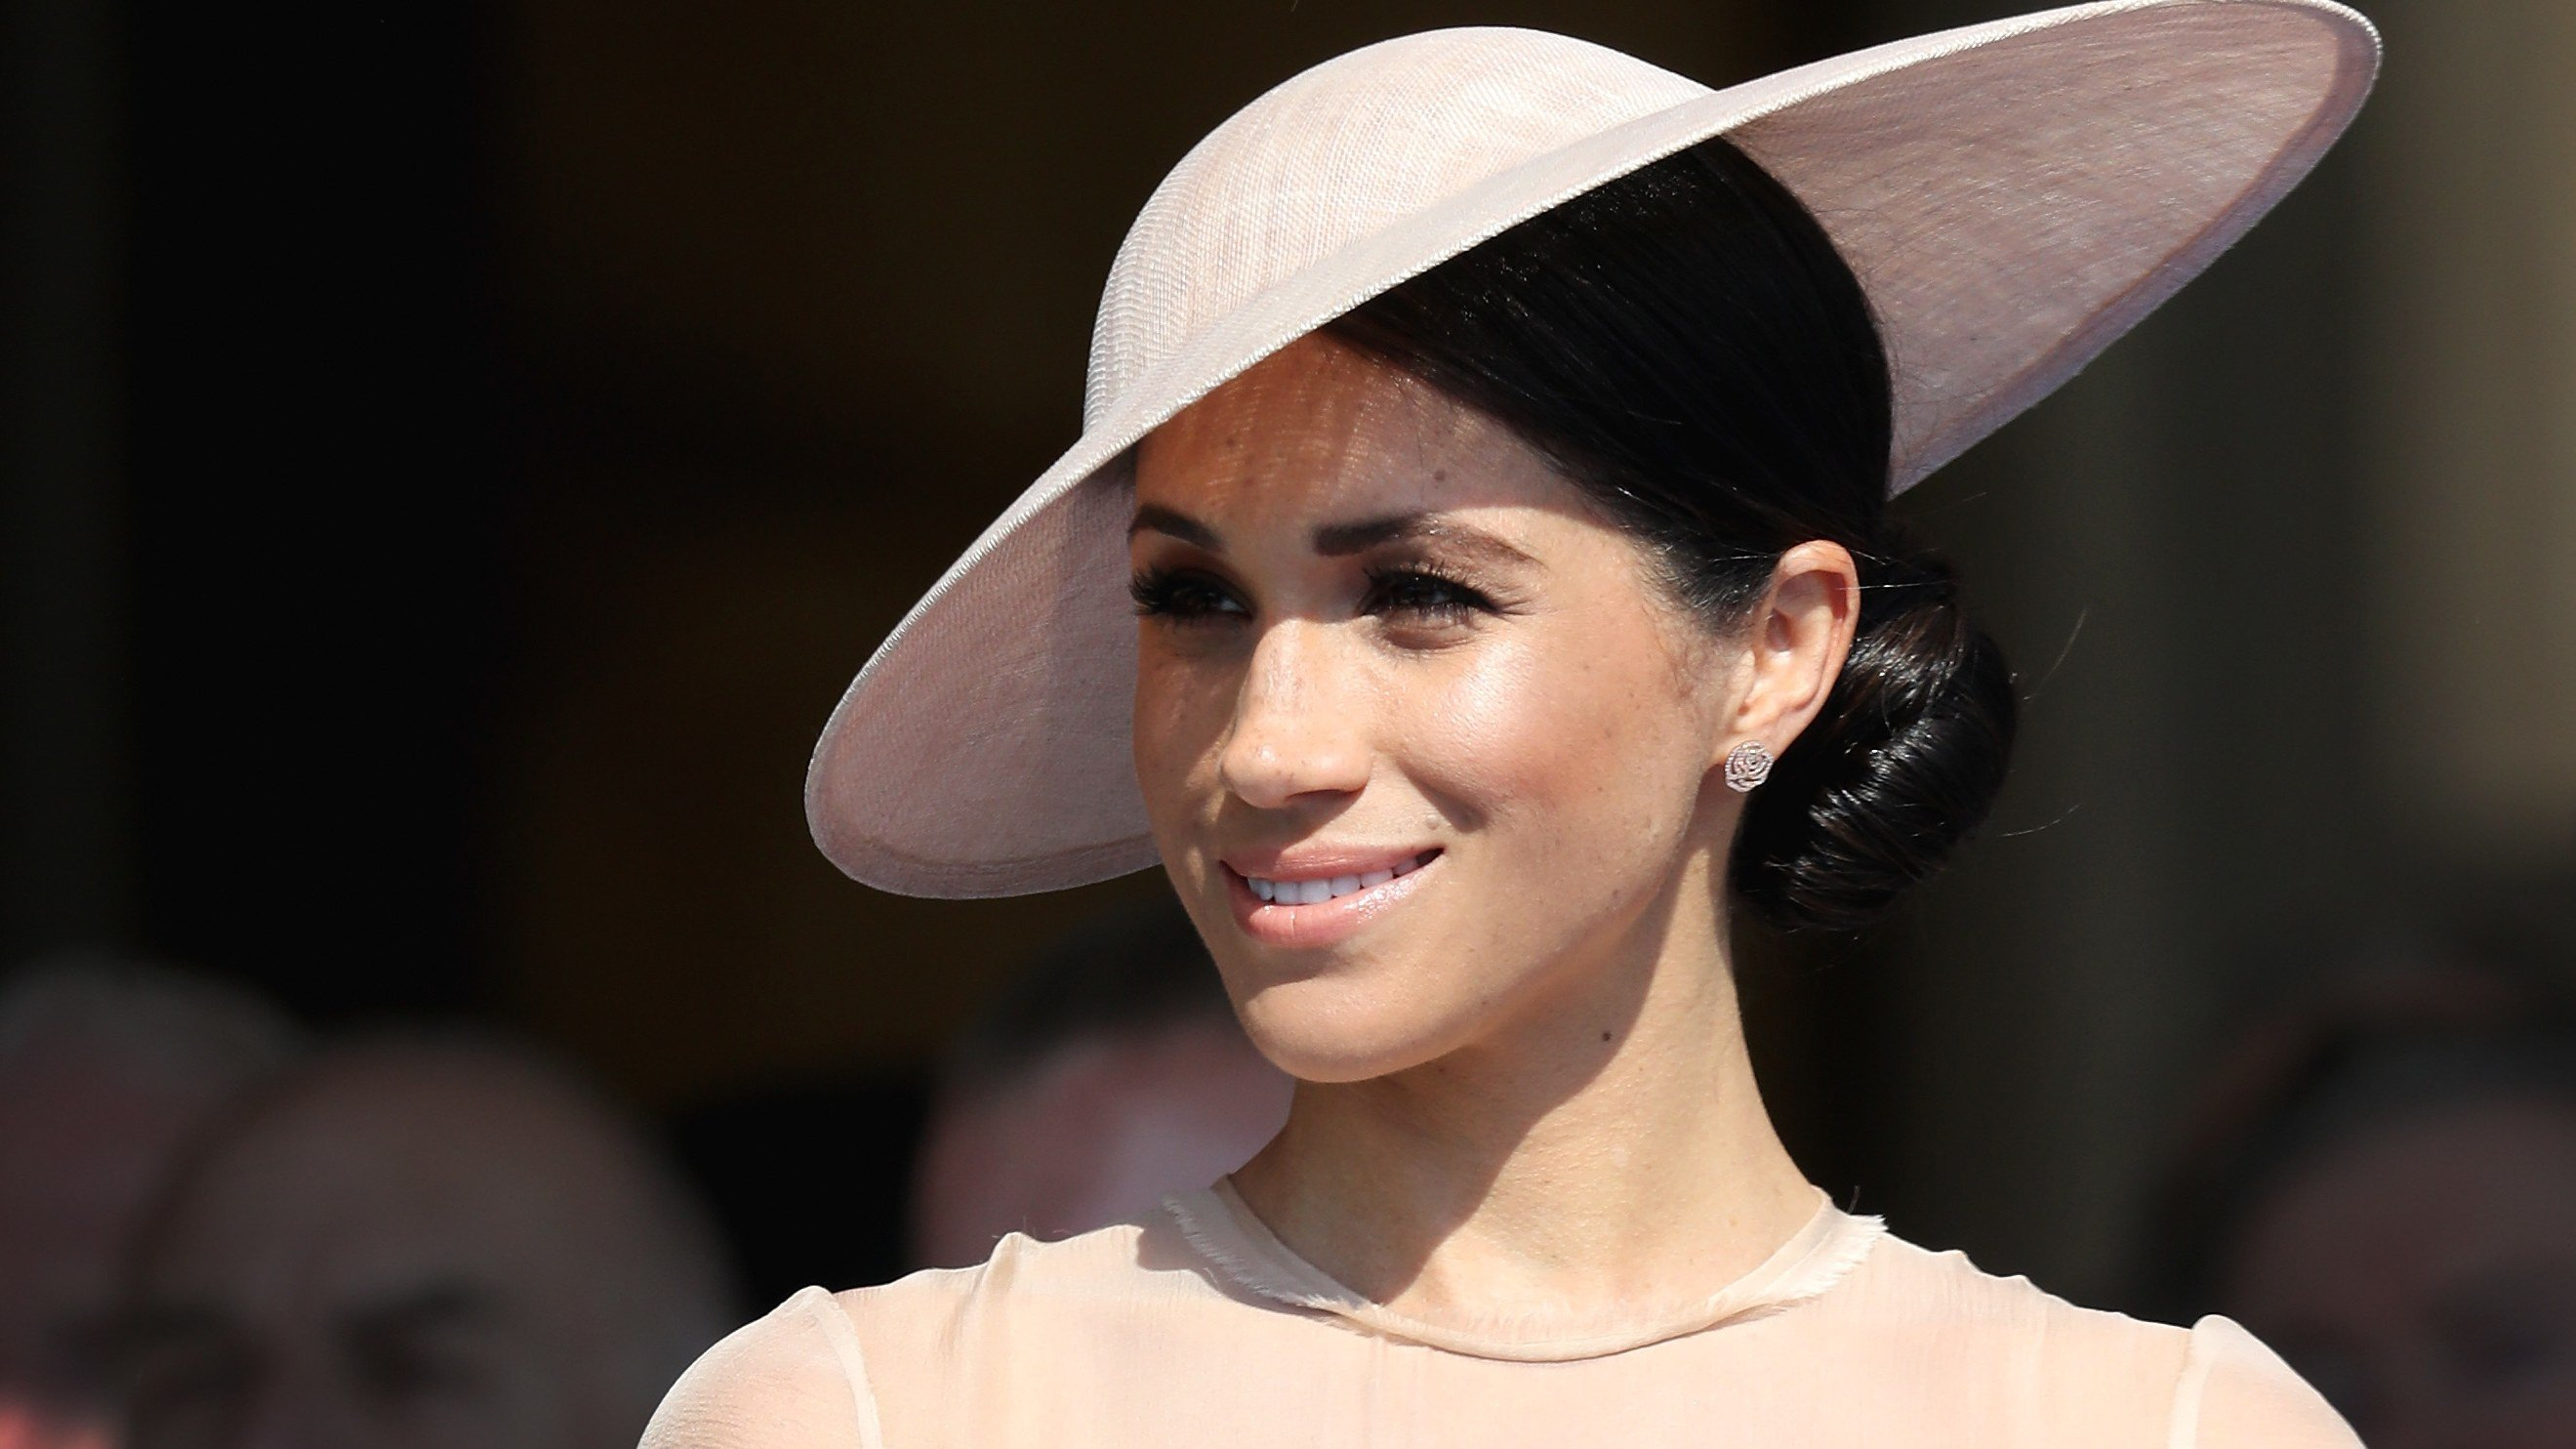 This is What Meghan Markle's Coat of Arms Looks Like